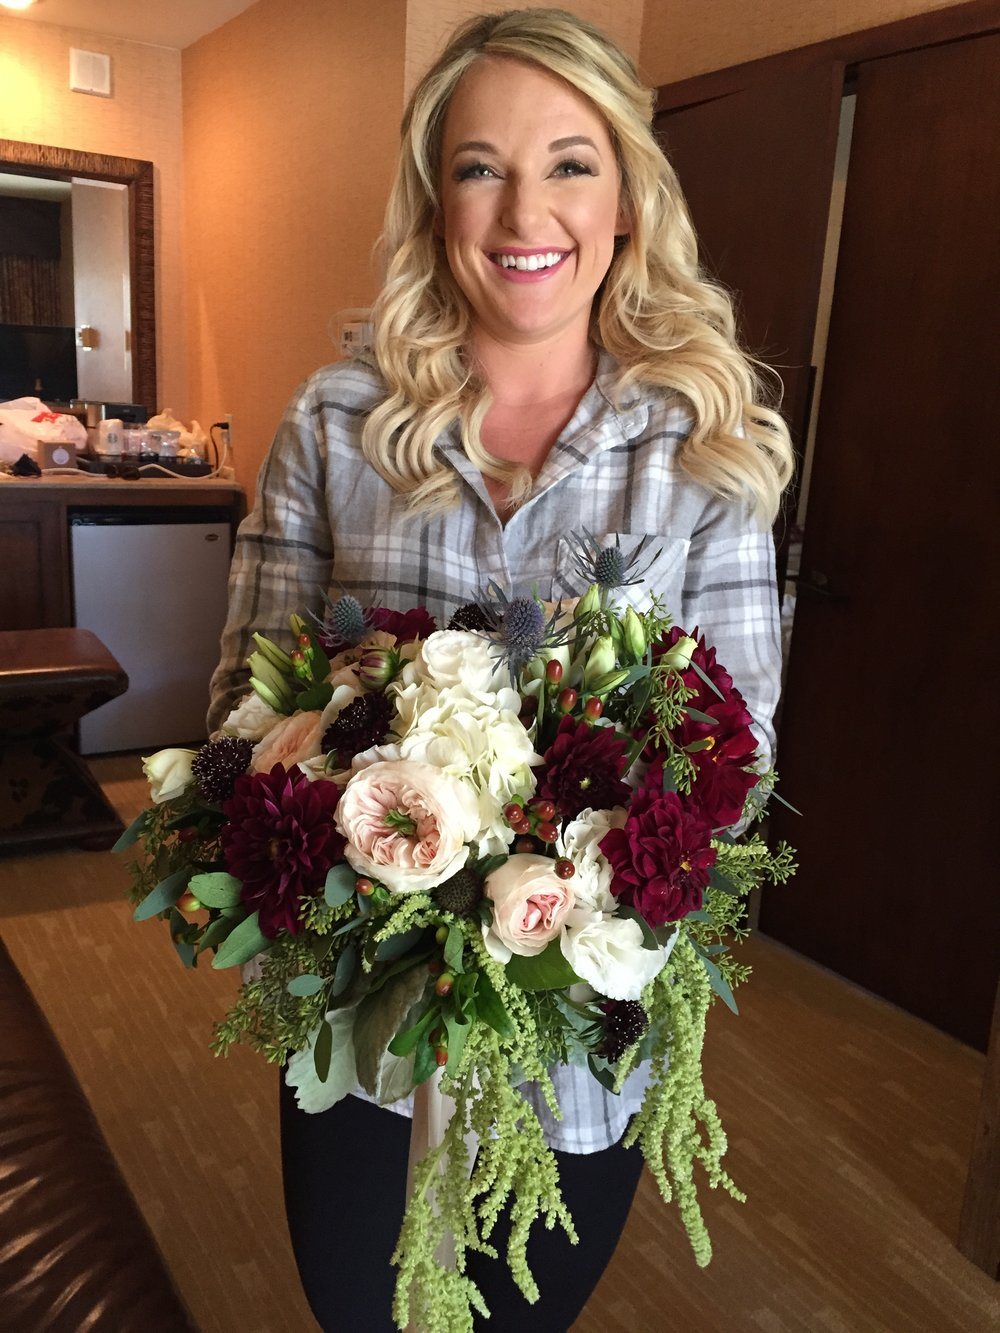 Wildflowers at The Lake Wedding Floral Design - Bridal Bouquet